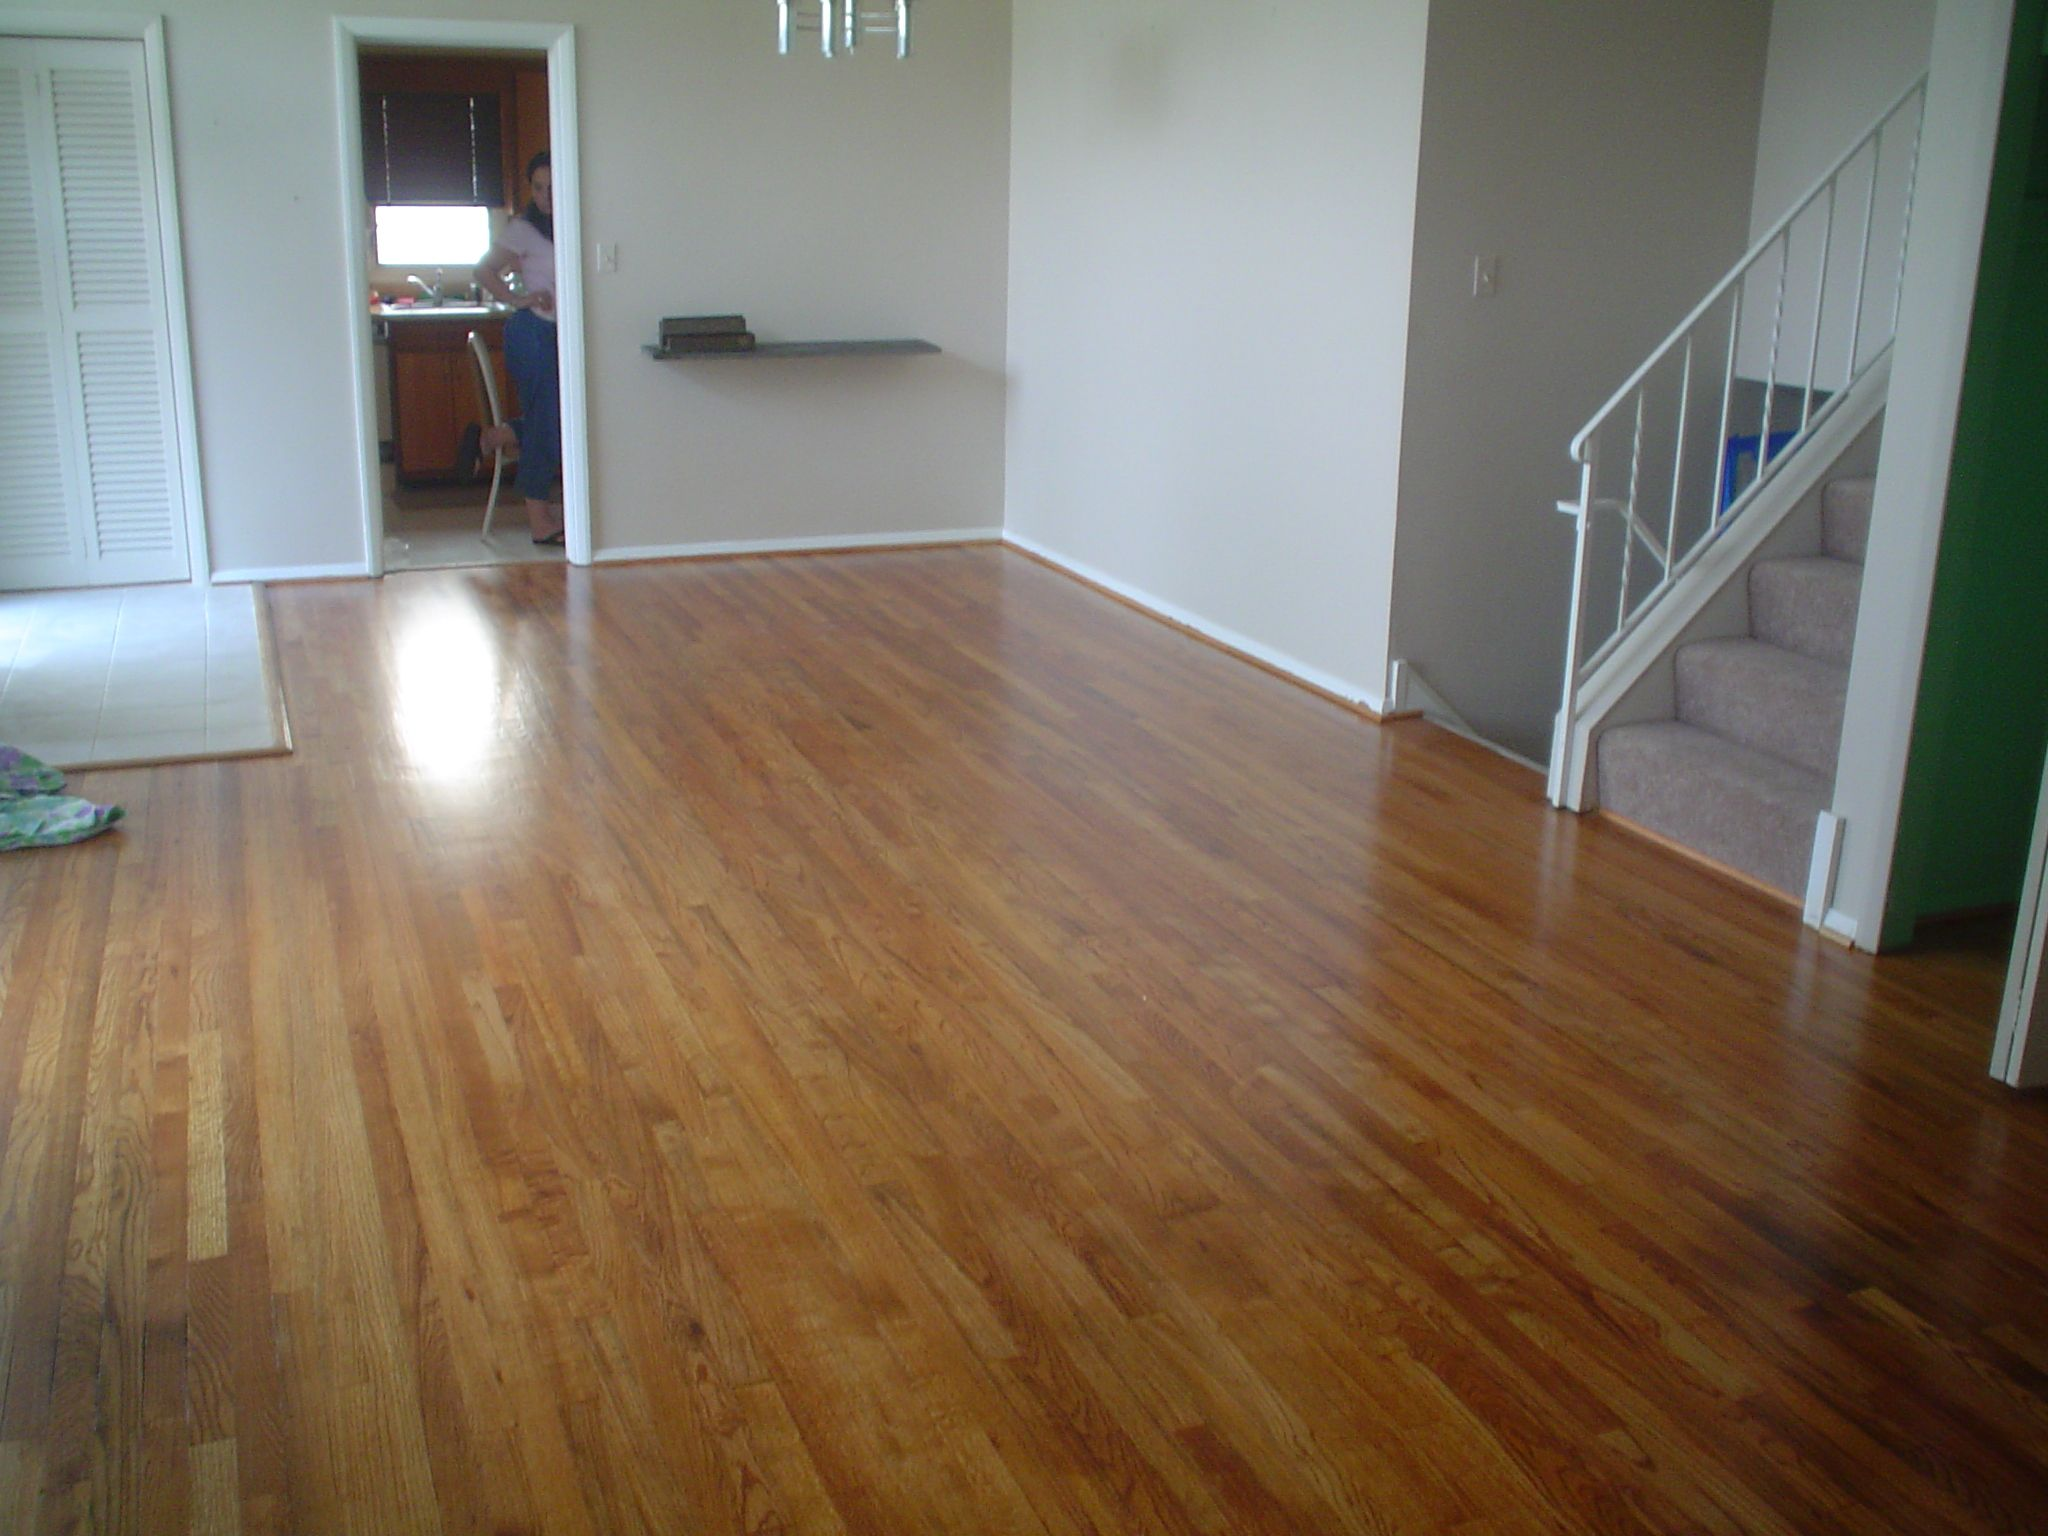 Vinyl To Hardwood After House Plans Refinishing